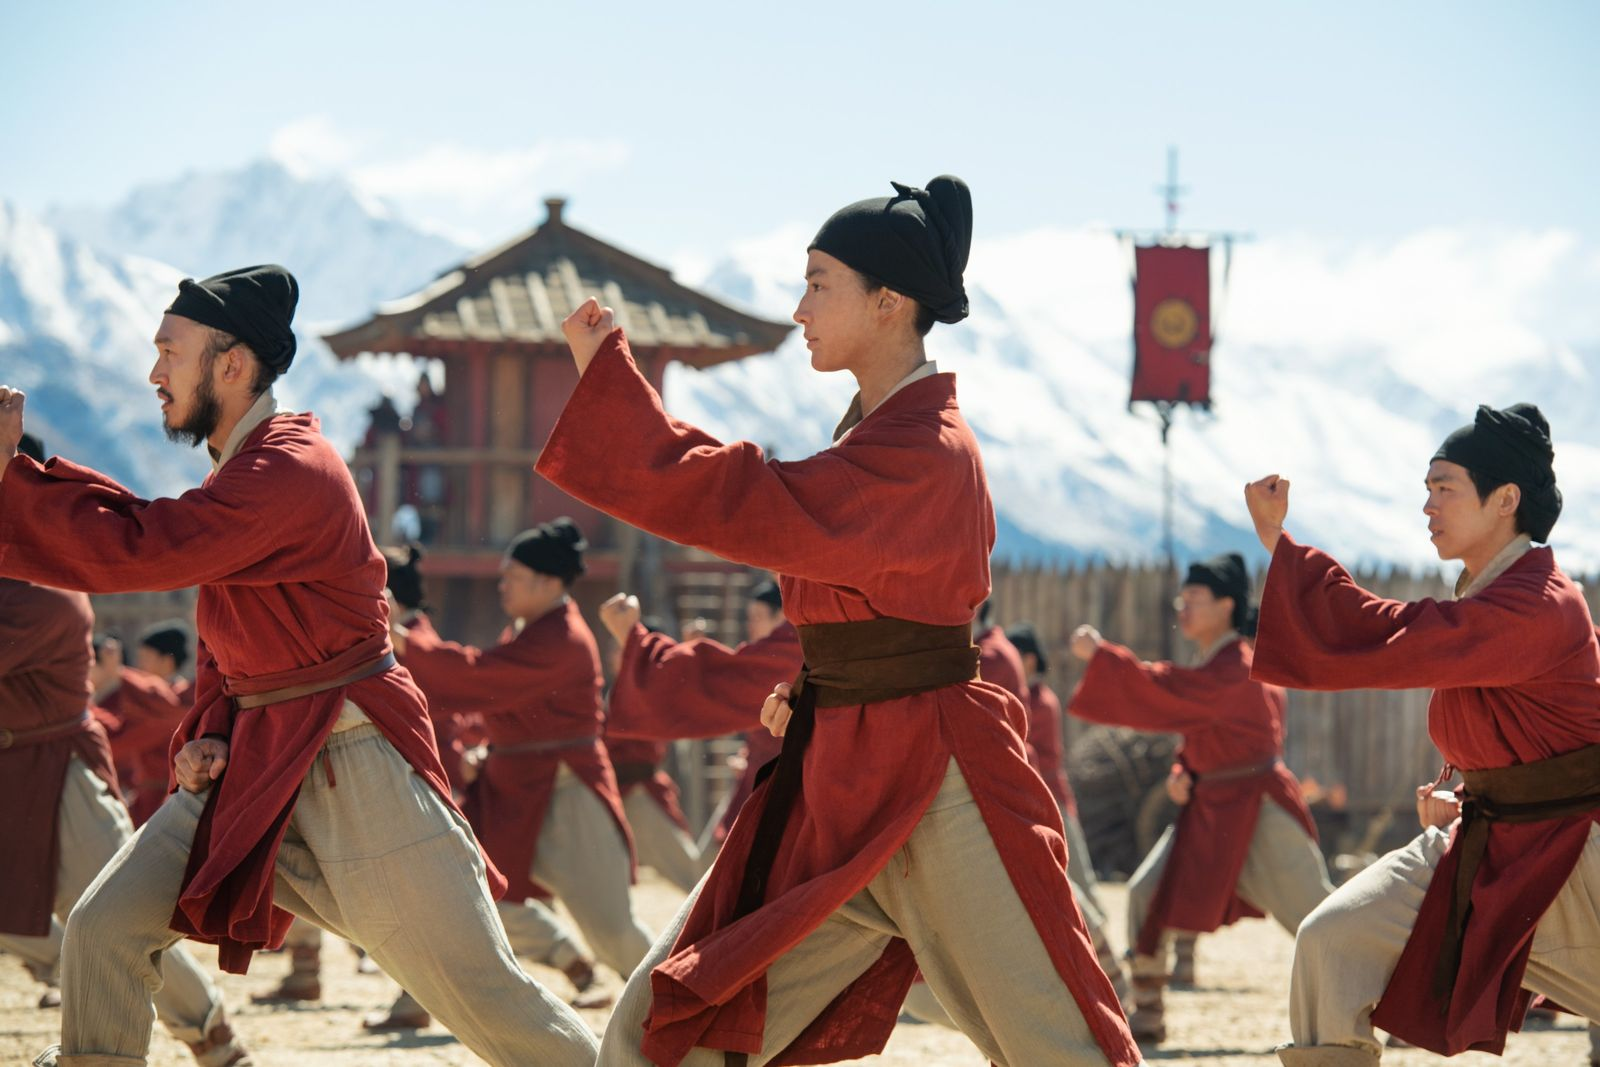 Liu Yifei as Hua Mulan in the new Disney release of Mulan. 'War dances' were observed in China ...